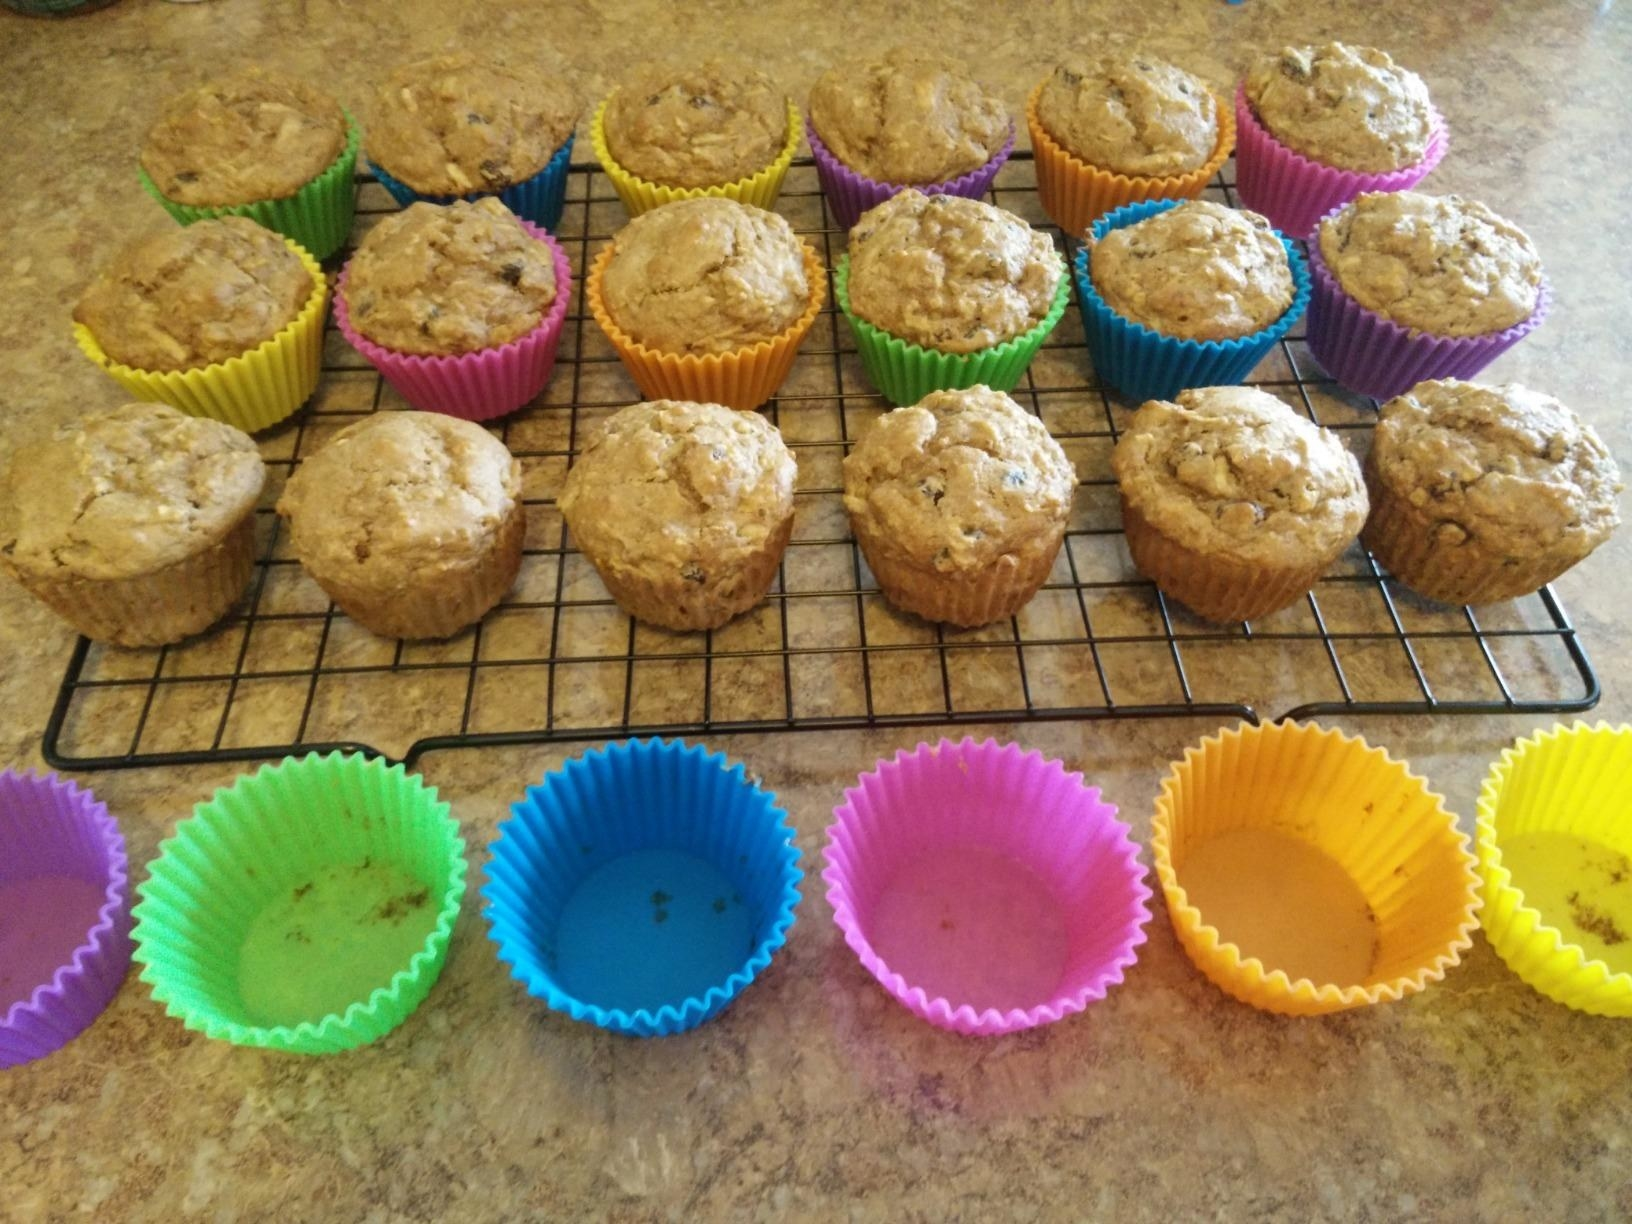 A reviewer showing muffins removed from the silicone cups